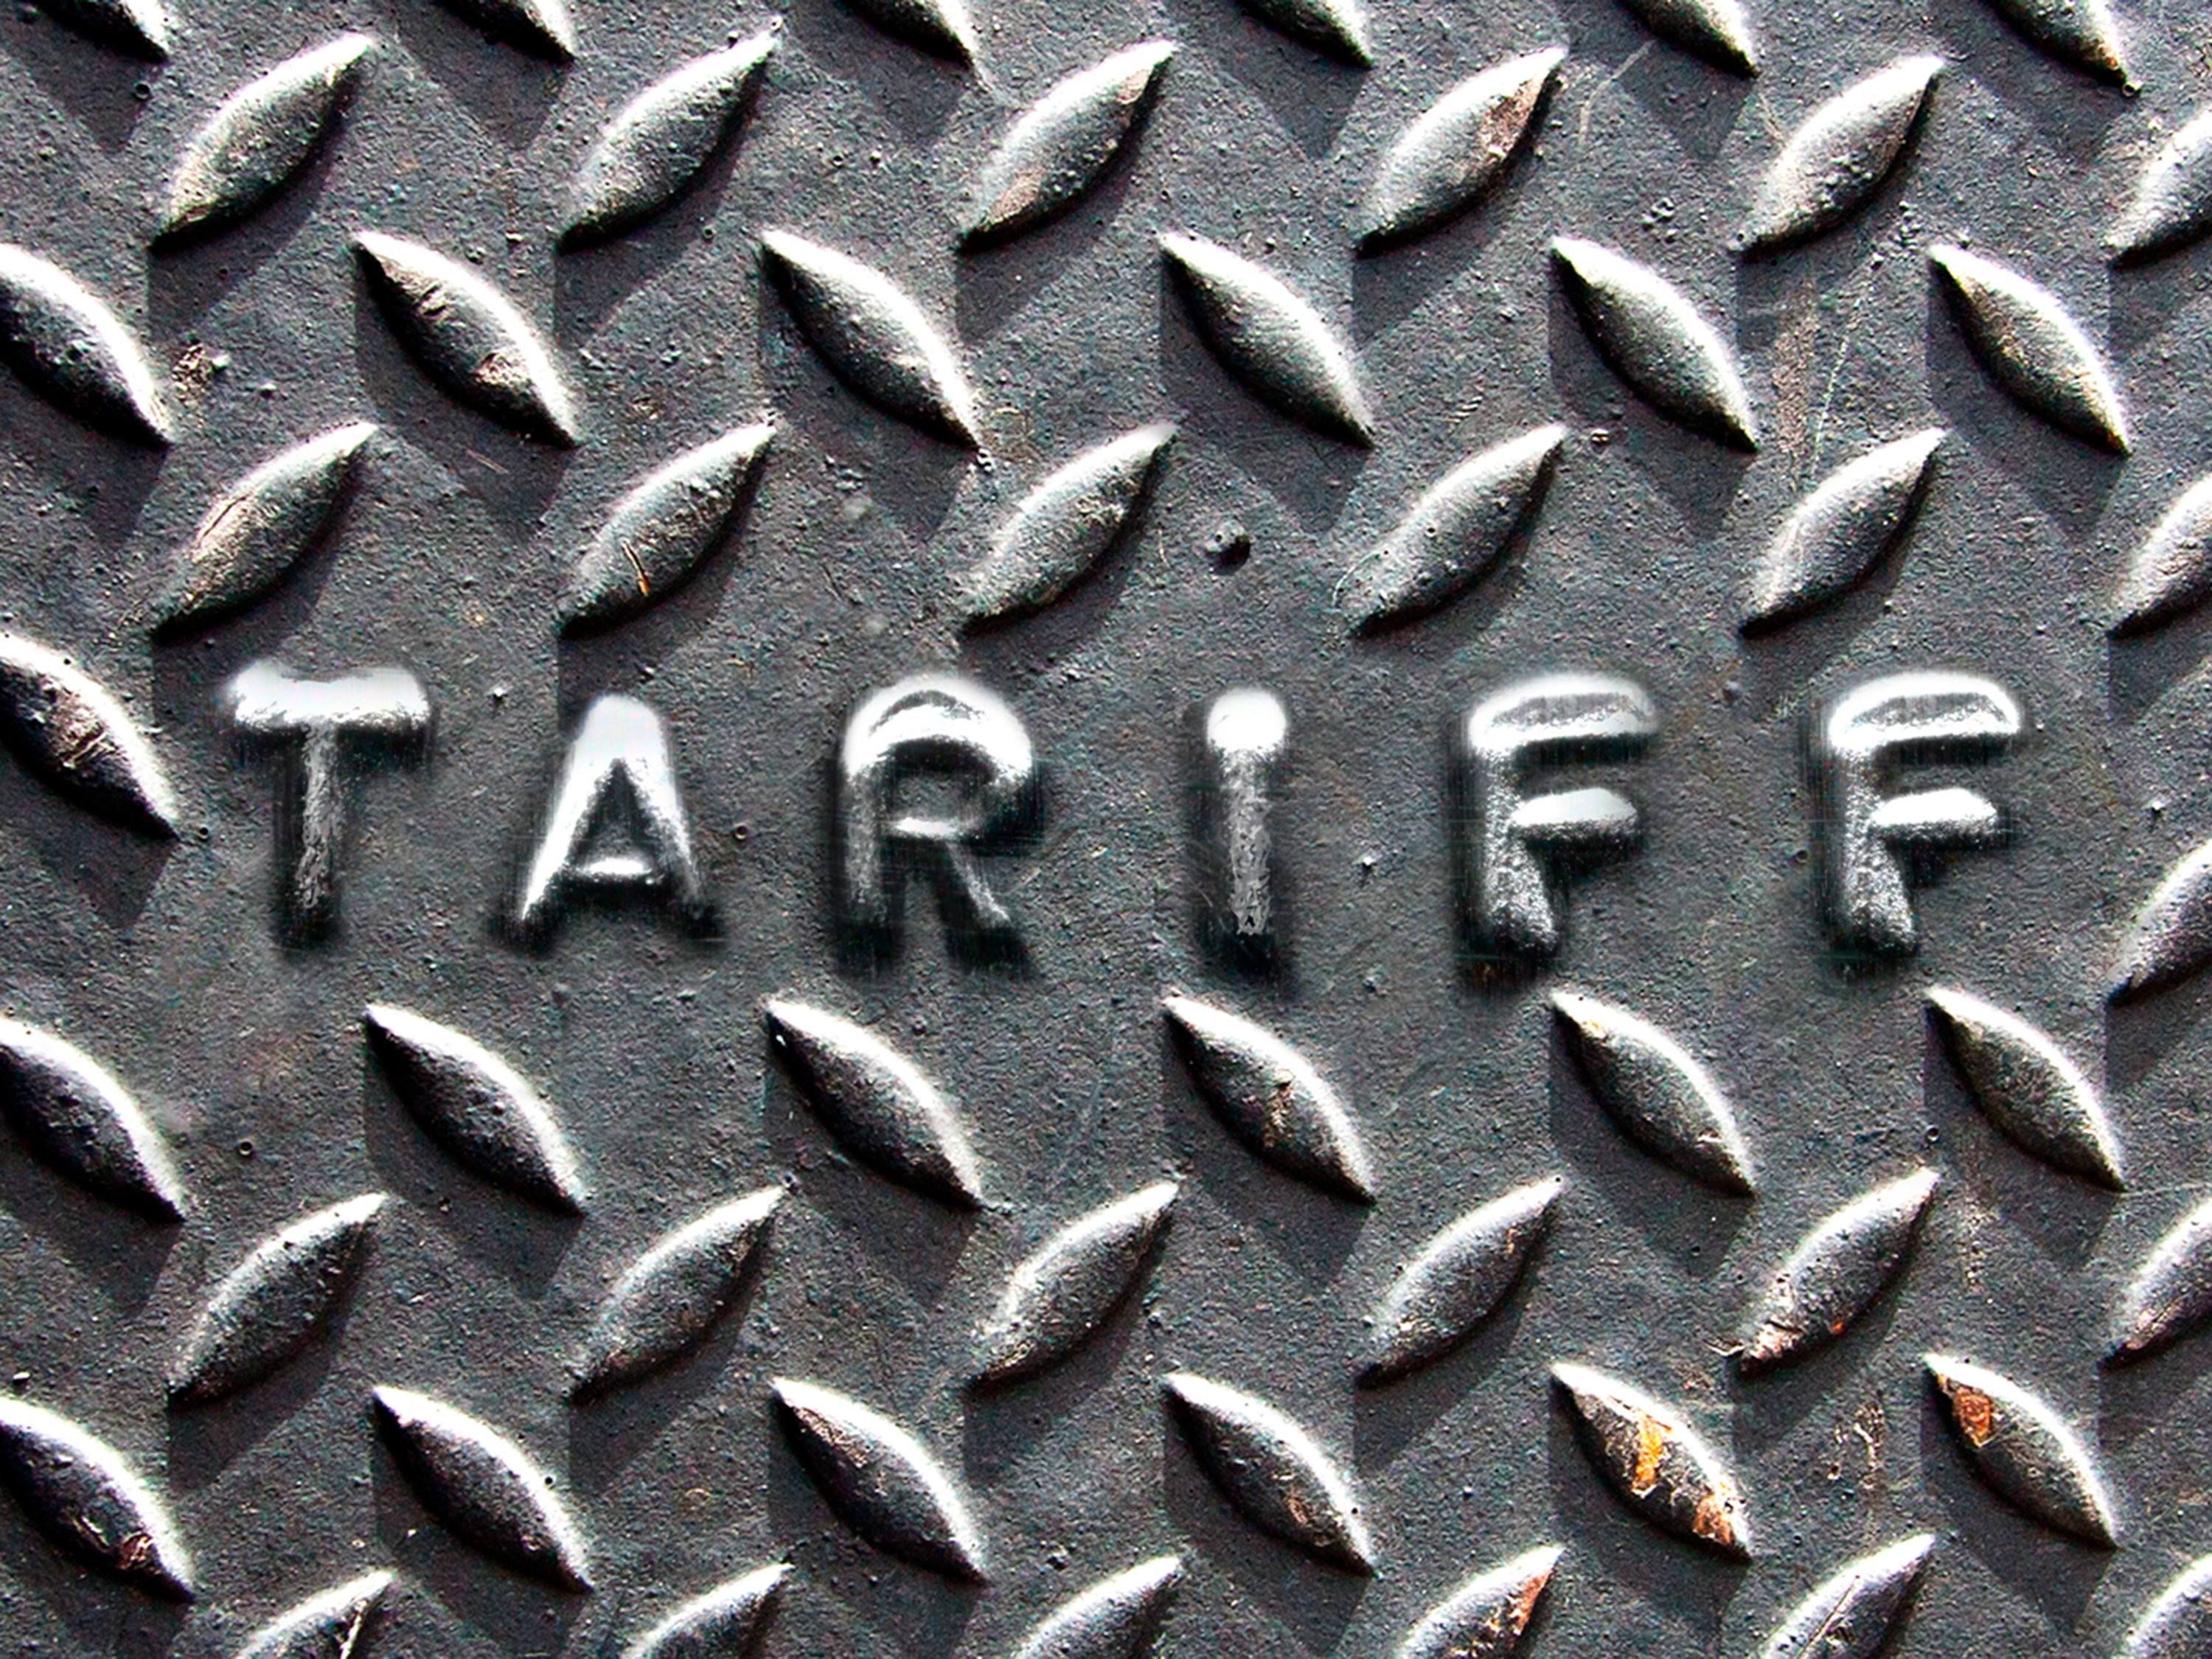 Commerce Secretary Wilbur Ross suggested three options for Trump on steel and aluminum -- impose an across-the-board tariff, target select countries with higher tariffs, or limit the amount of steel and aluminum that comes into the United States.